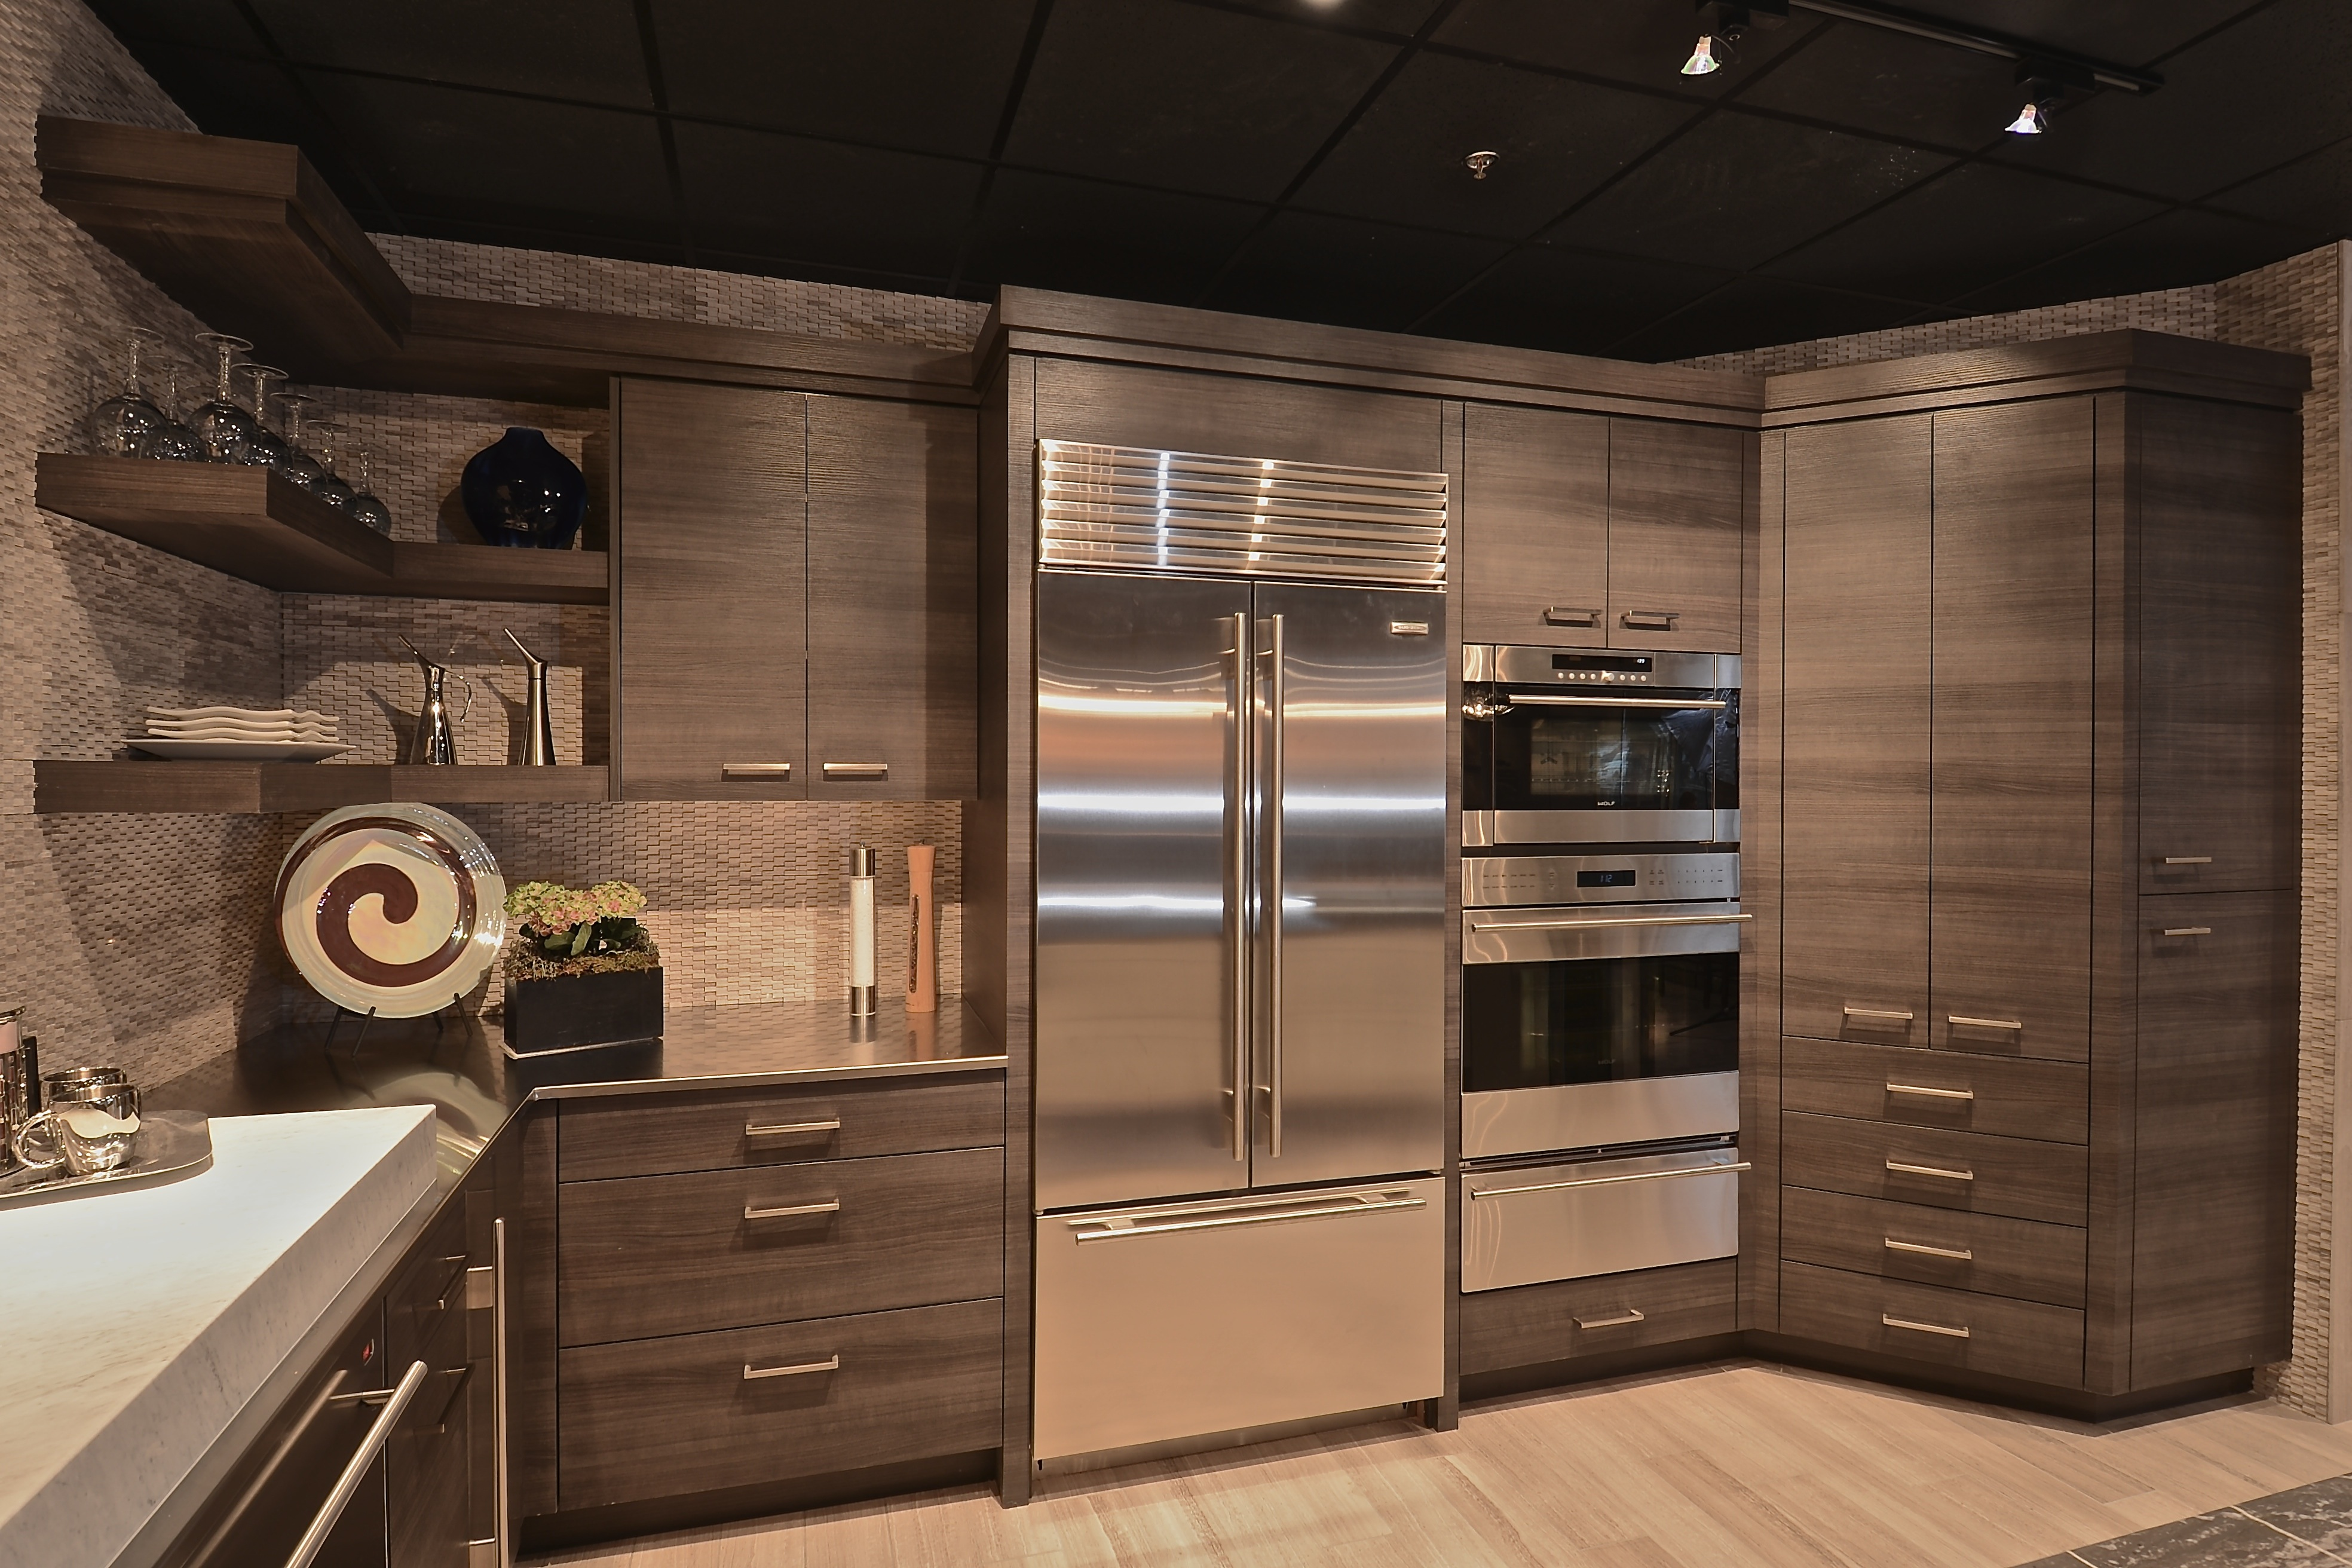 Beautiful The Cabinets Are Our Textured Melamine With Horizontal Grain. Peppertree  Takes Great Pride In Making Sure The Grain Matches Up As You ...